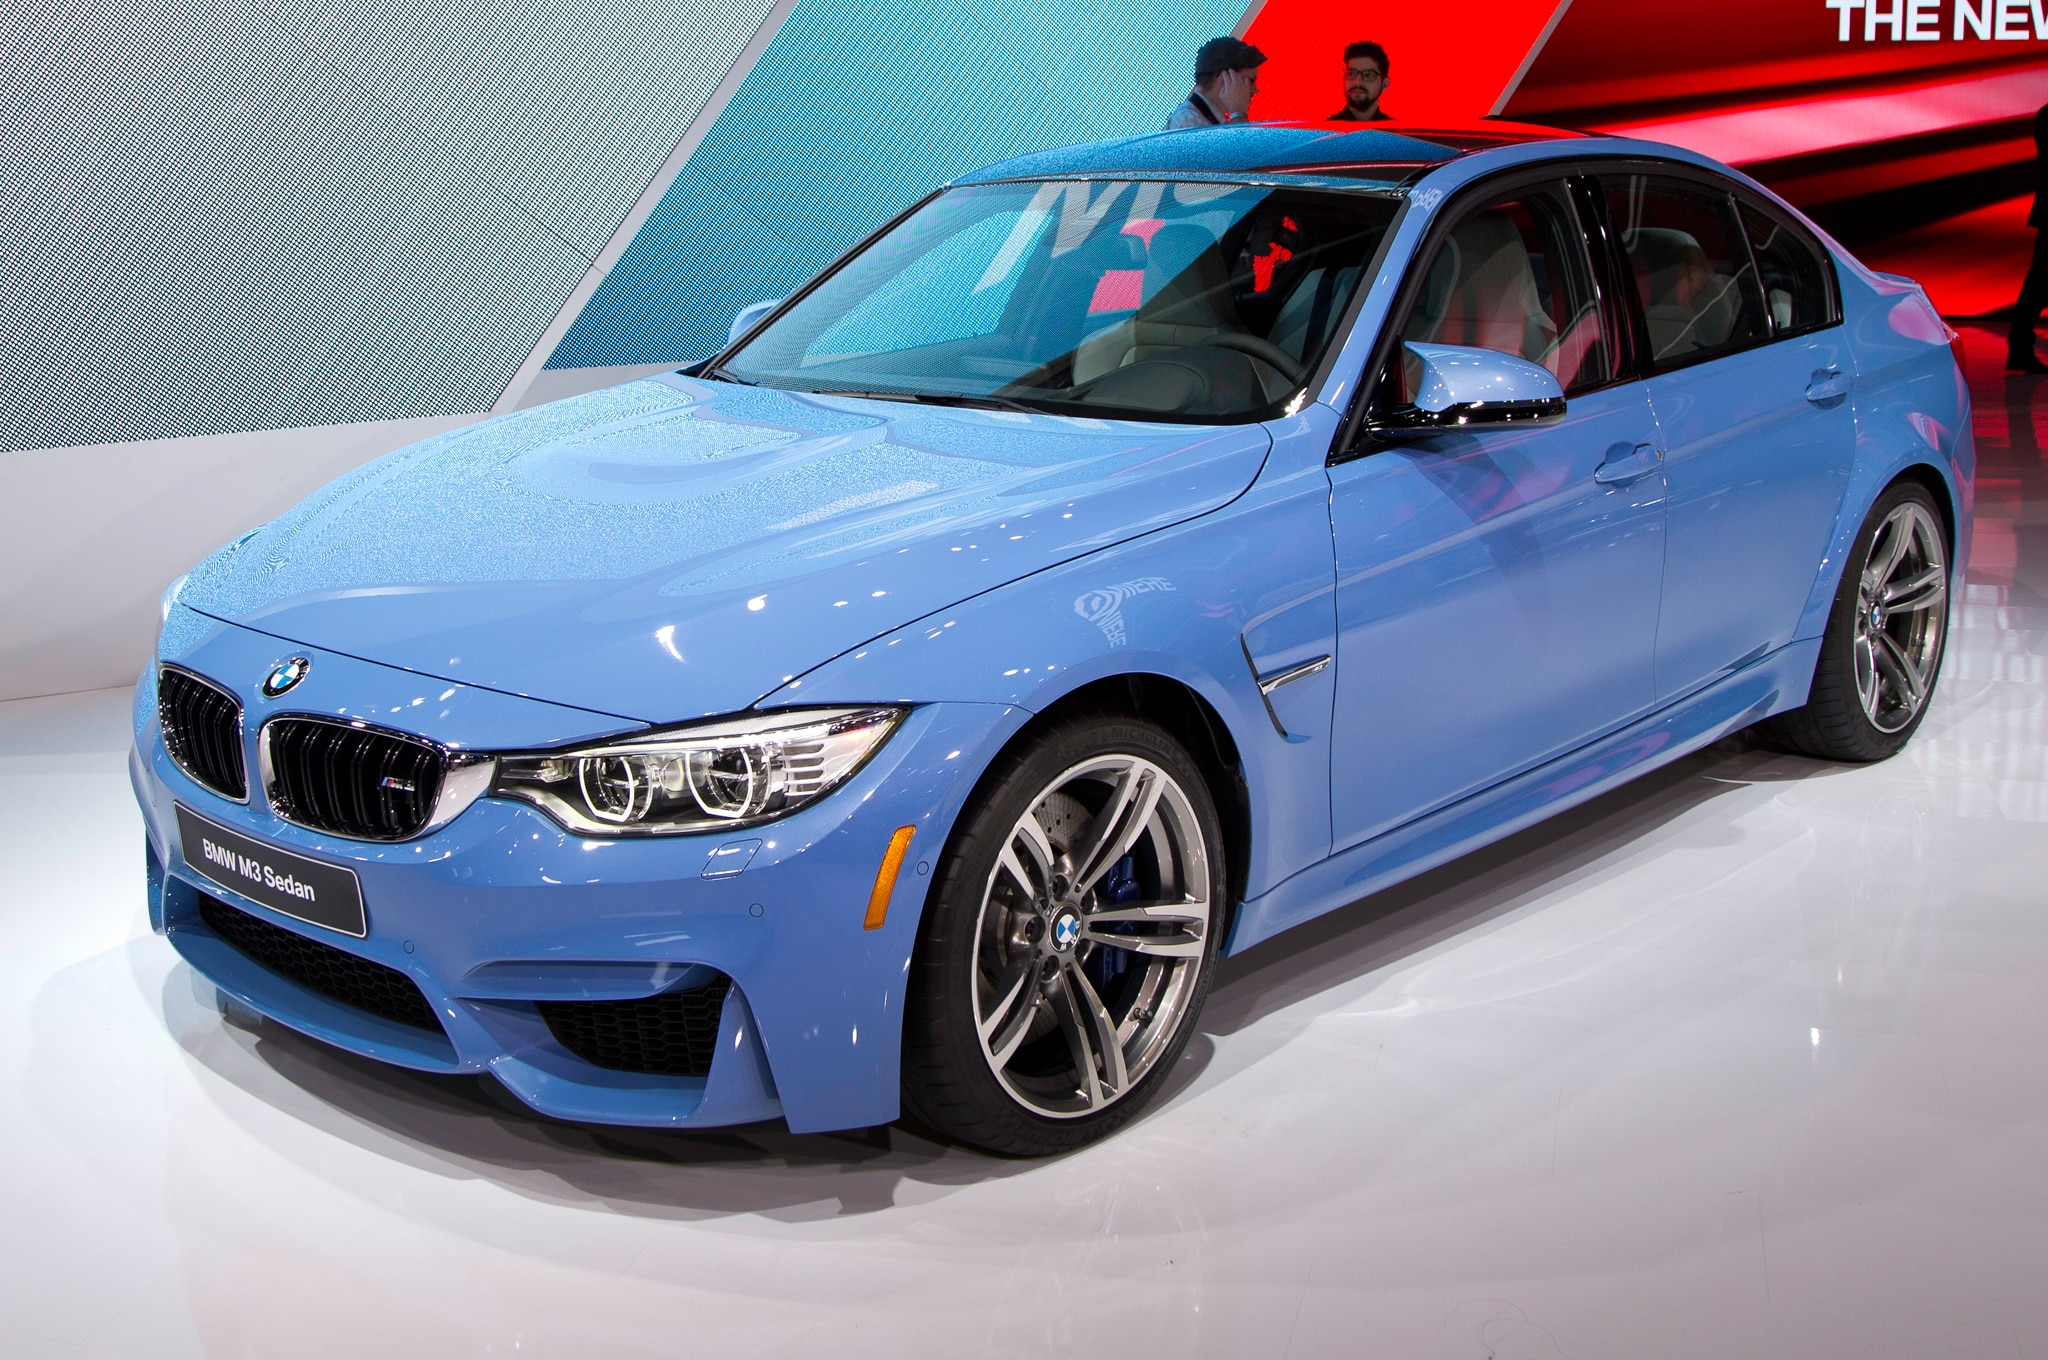 2015 Bmw M3 And M4 Revealed For 2014 Detroit Auto Show